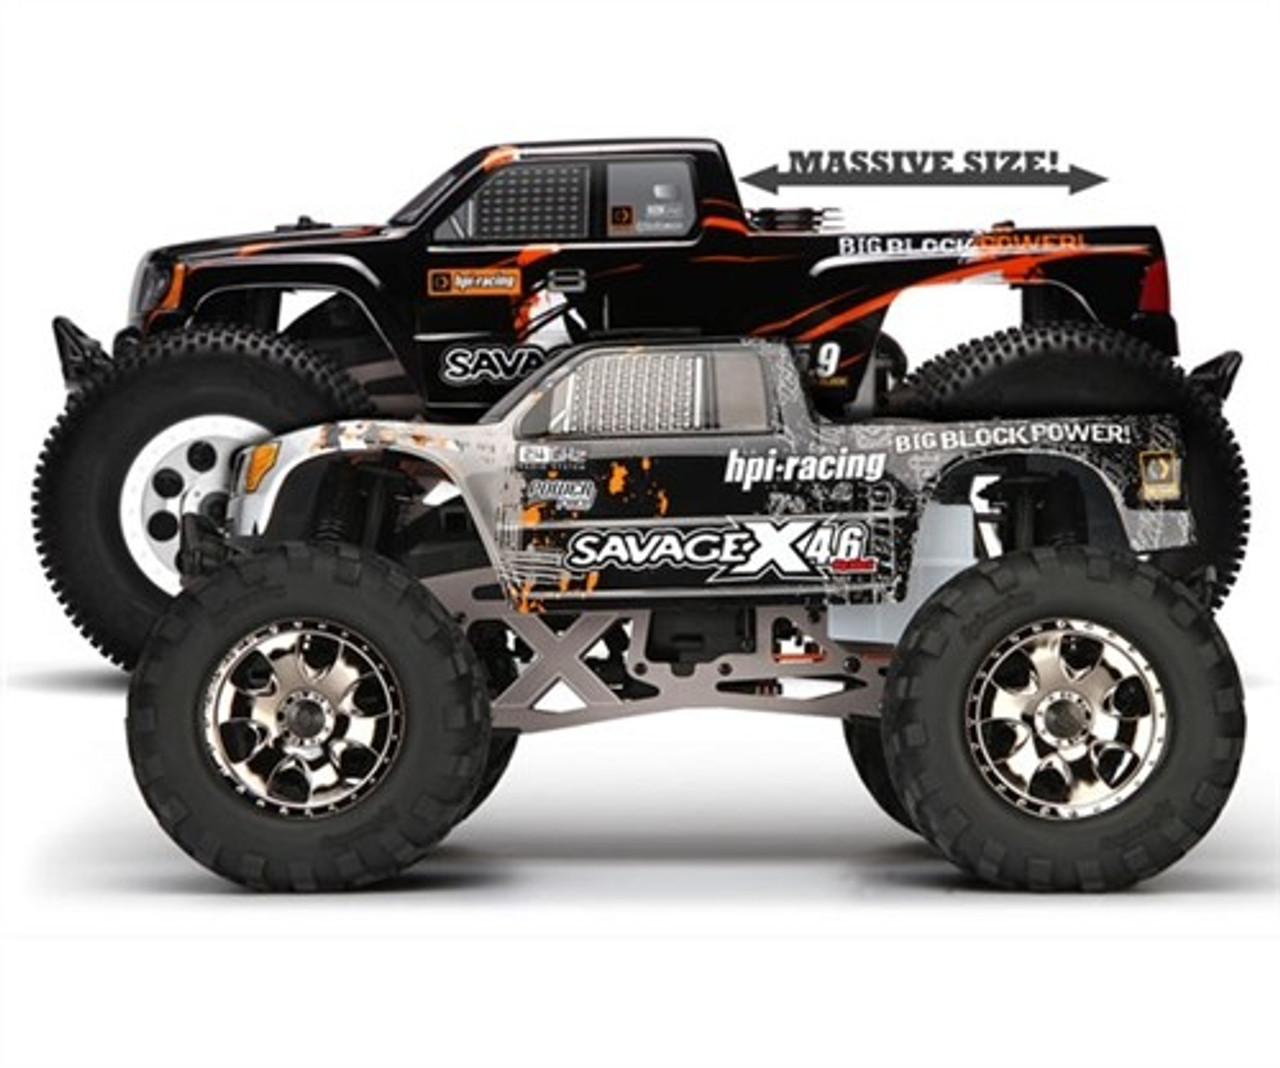 Hpi Savage Xl Nitro Rtr 4wd Rc Monster Truck